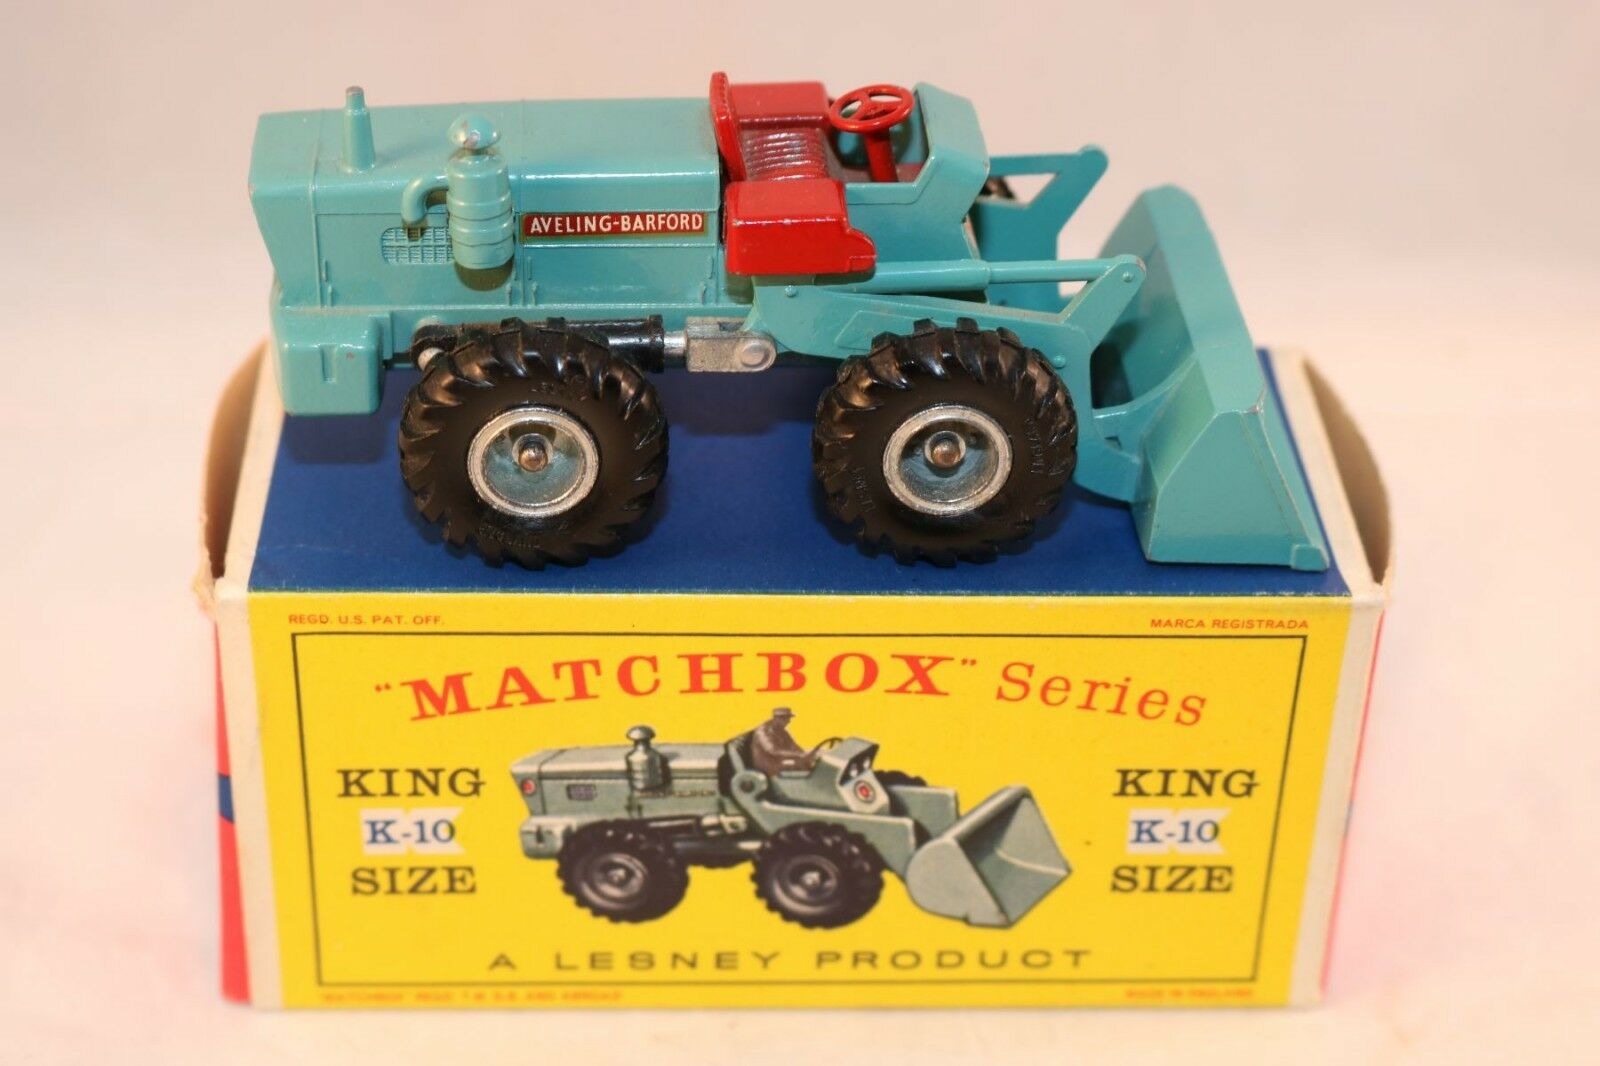 Matchbox No K10 K 10 Aveling Barford tractor shovel very near mint in box